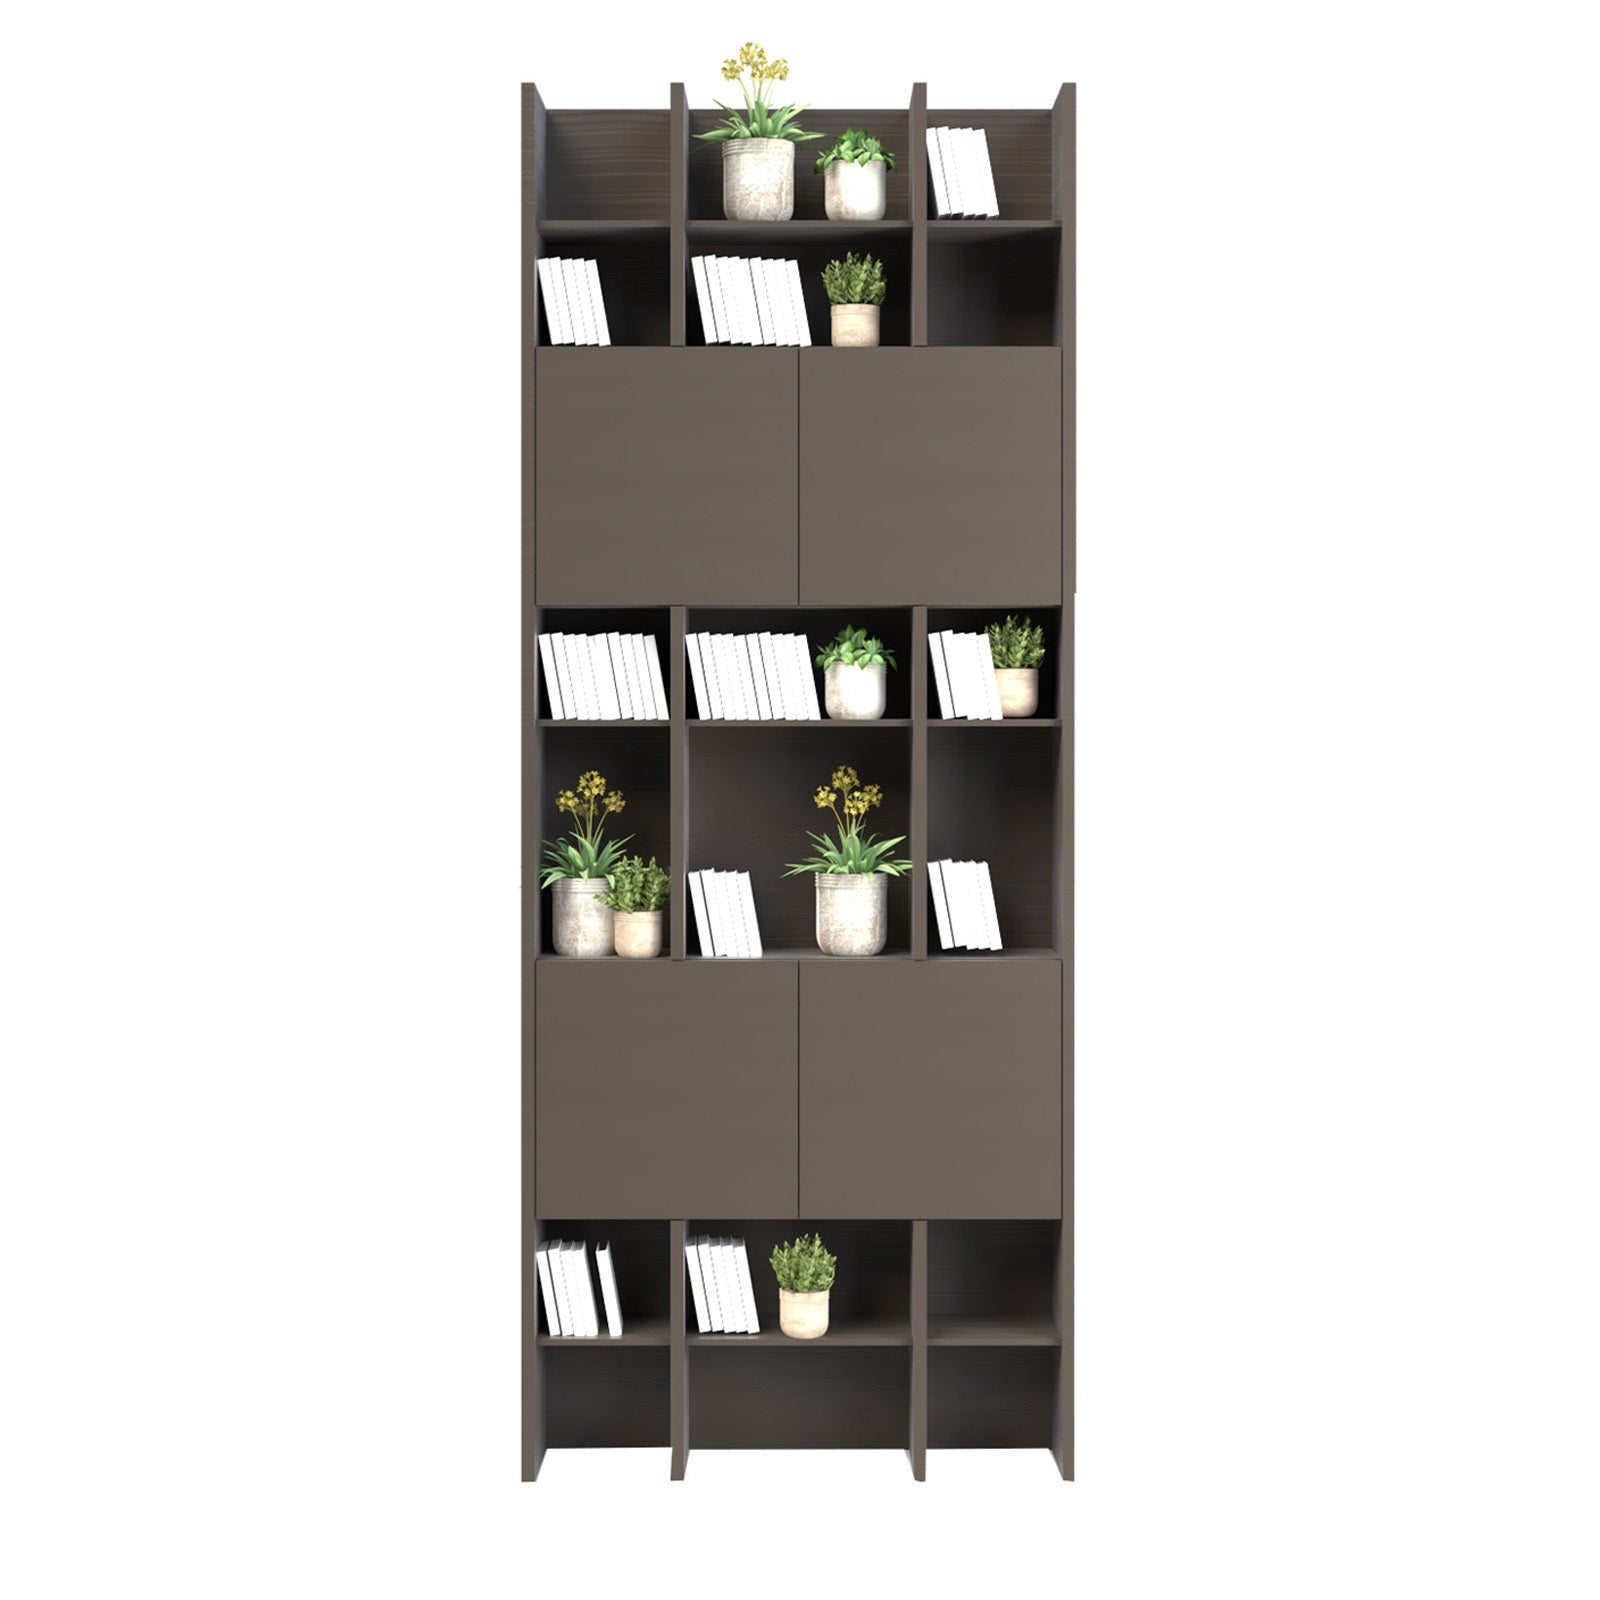 Siena wall shelving unit SEINA-L110